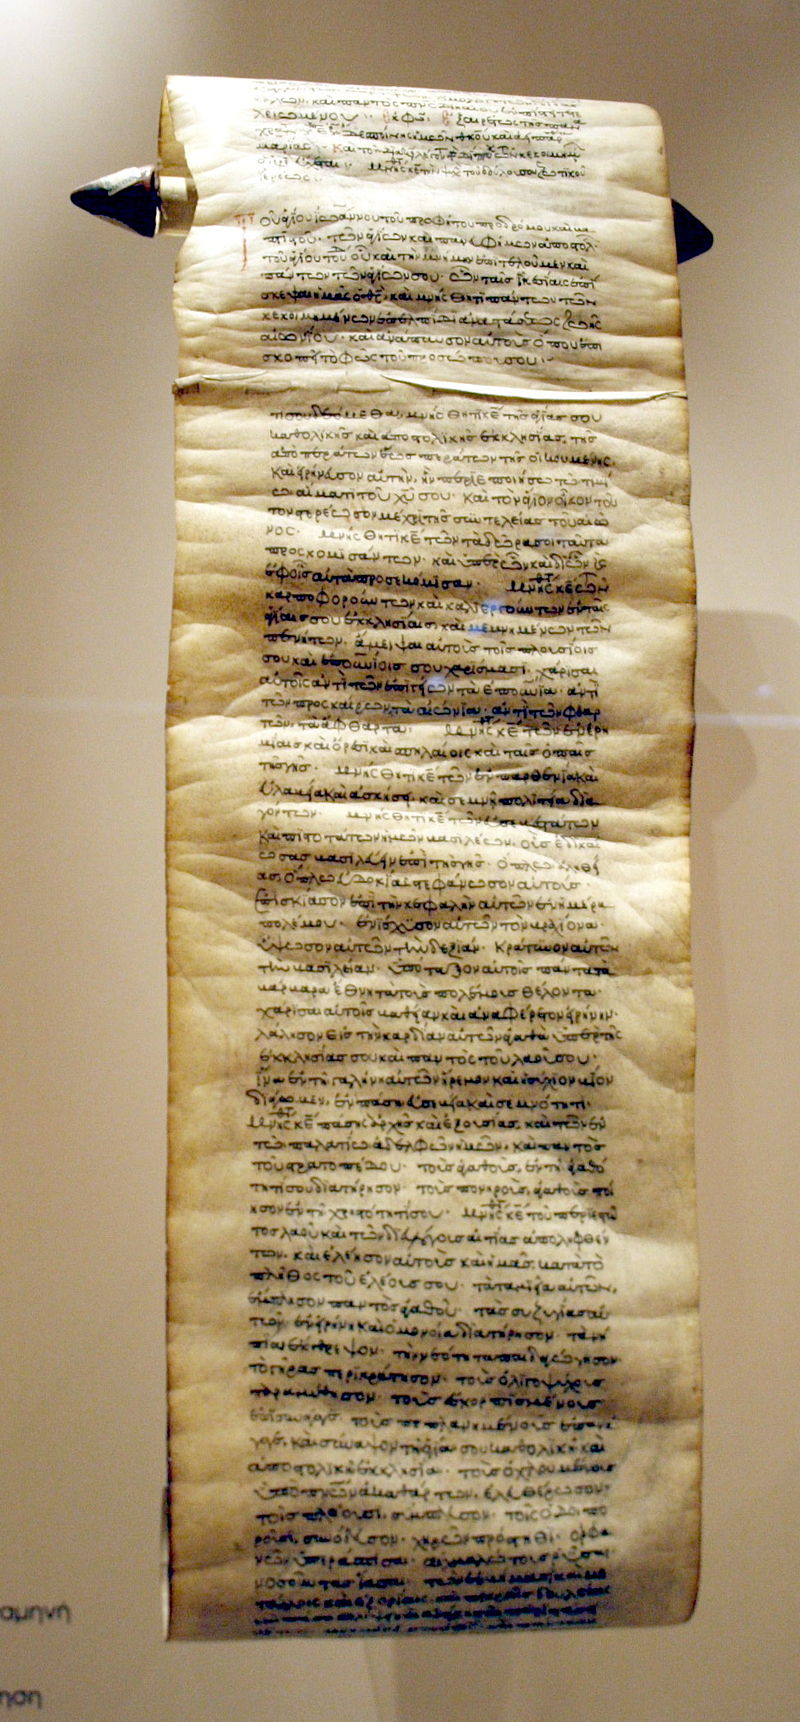 2049_-_Byzantine_Museum%2C_Athens_-_Parchement_scroll%2C_13th_century_-_Photo_by_Giovanni_Dall%27Orto%2C_Nov_12.jpg